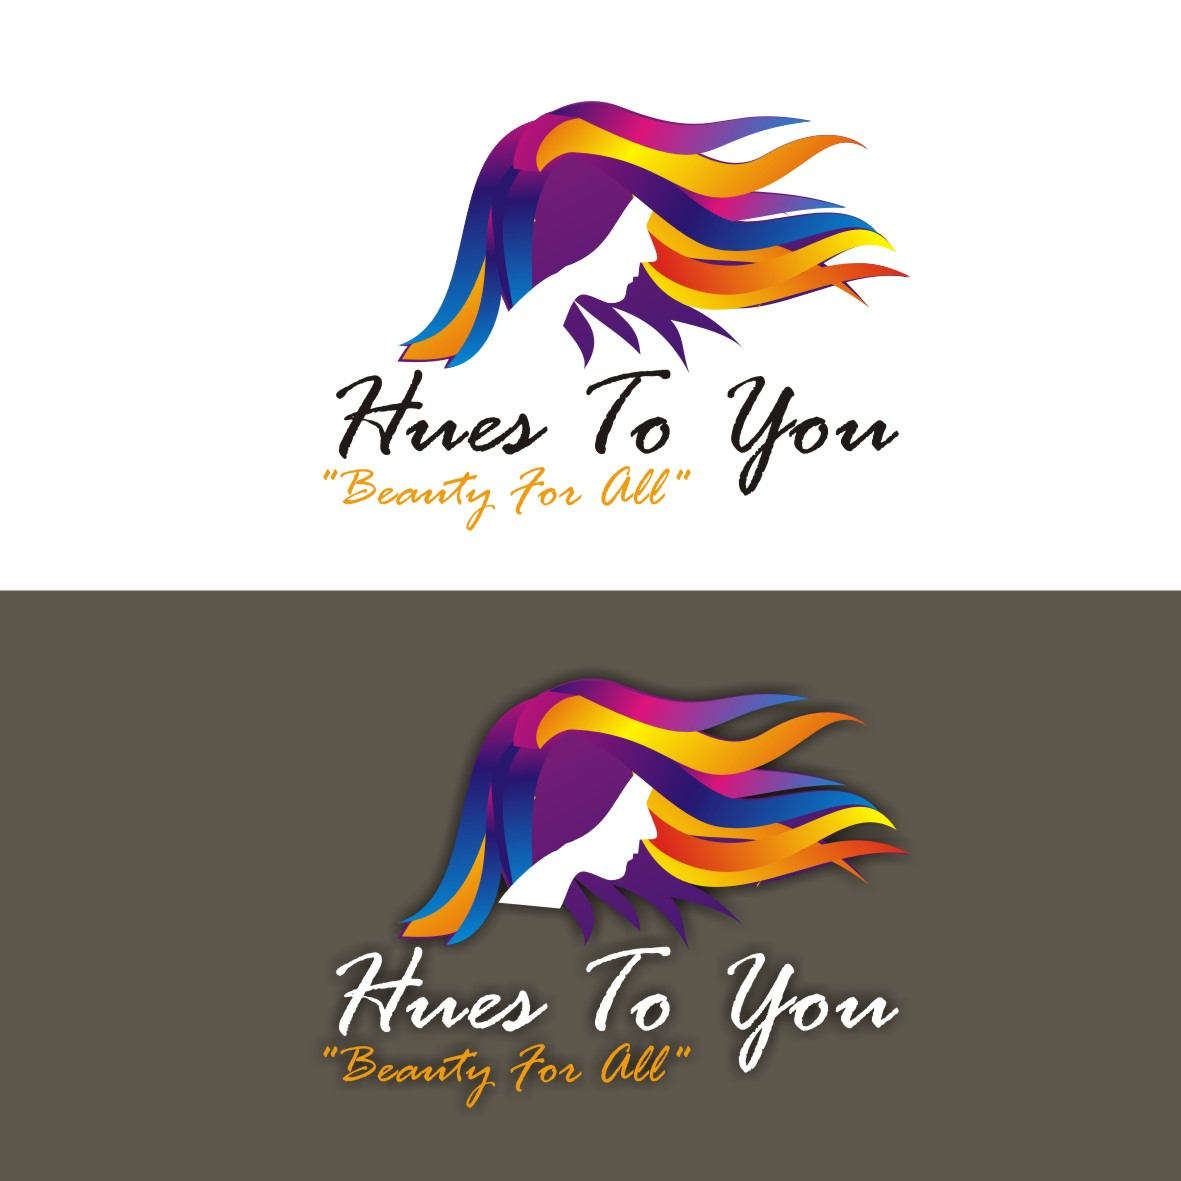 Logo Design by arteo_design - Entry No. 129 in the Logo Design Contest Hues To You Logo Design.